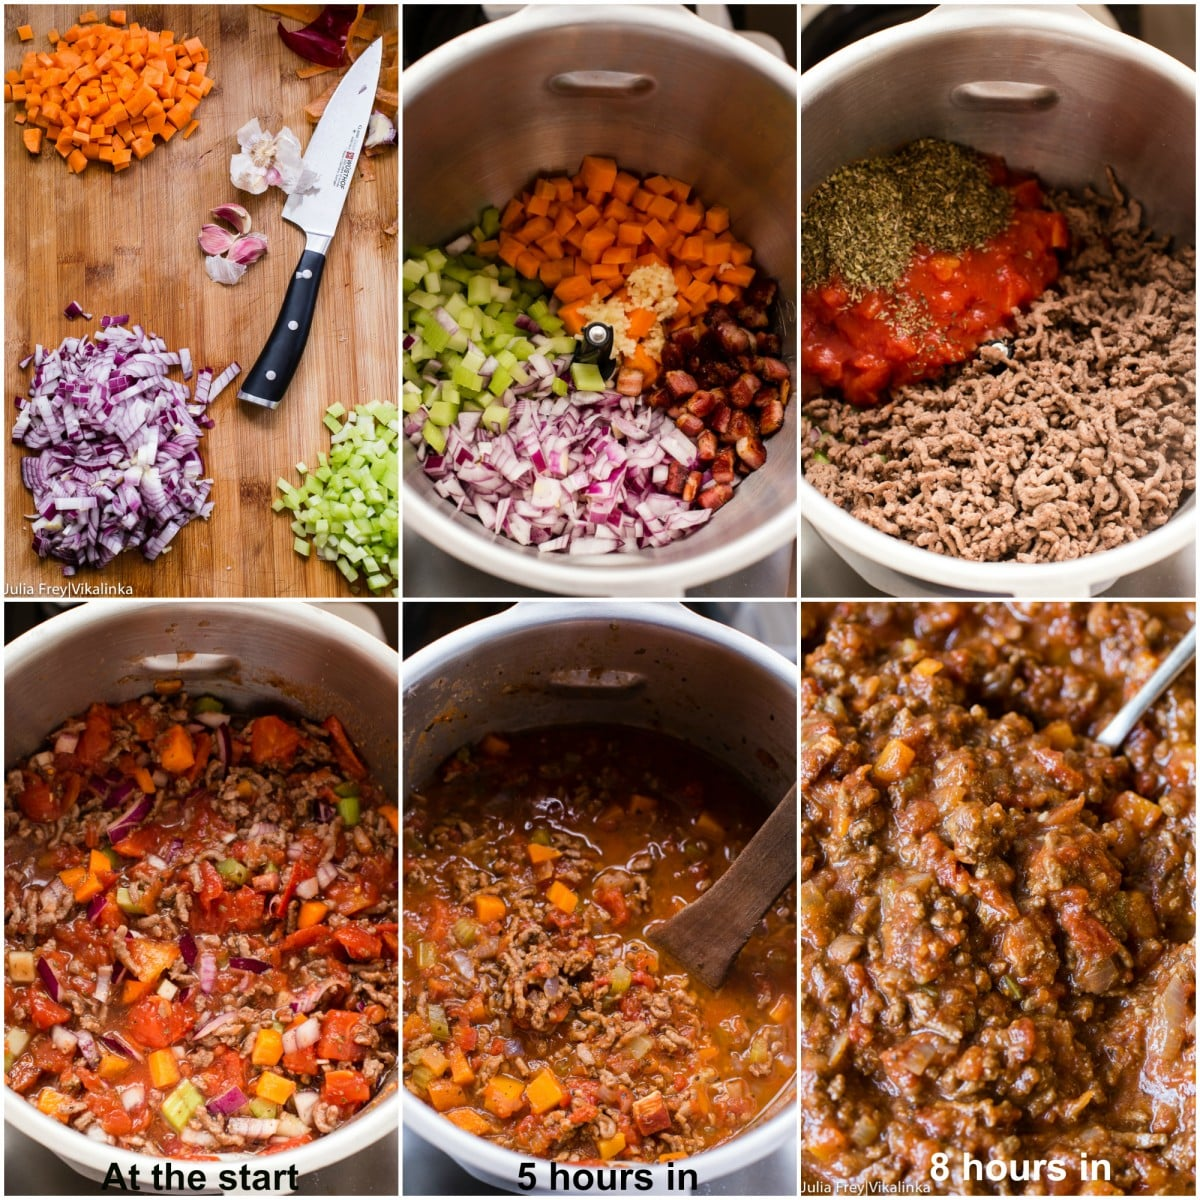 Slow CookerBeef Bolognese sauce pic